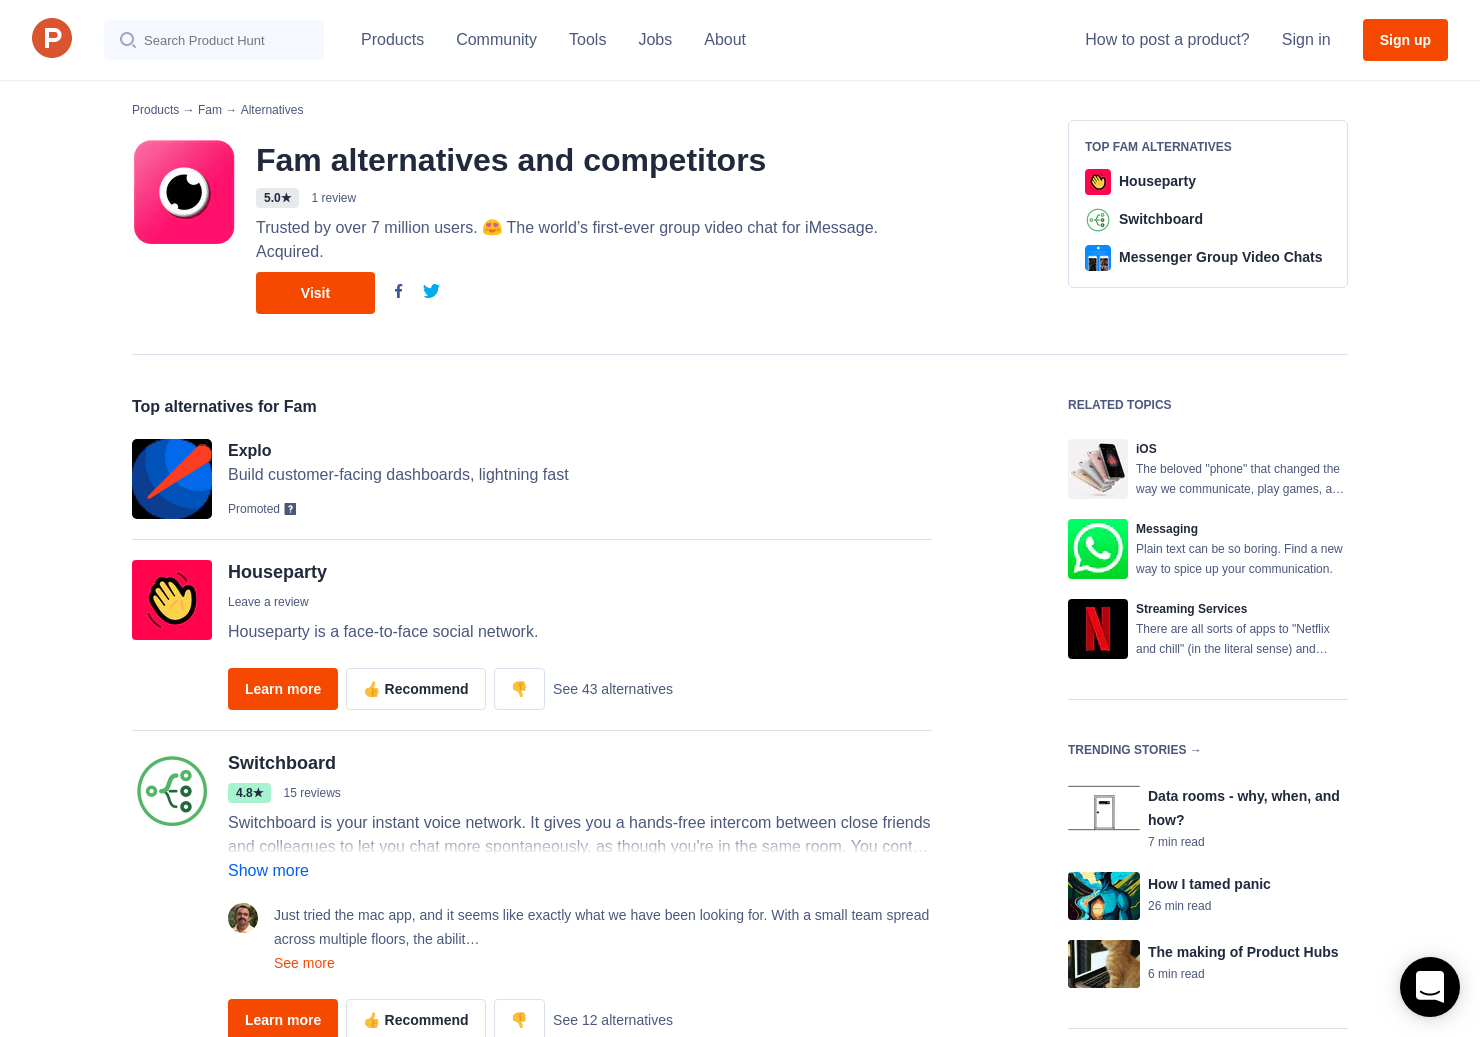 23 Alternatives to Fam for iPhone | Product Hunt